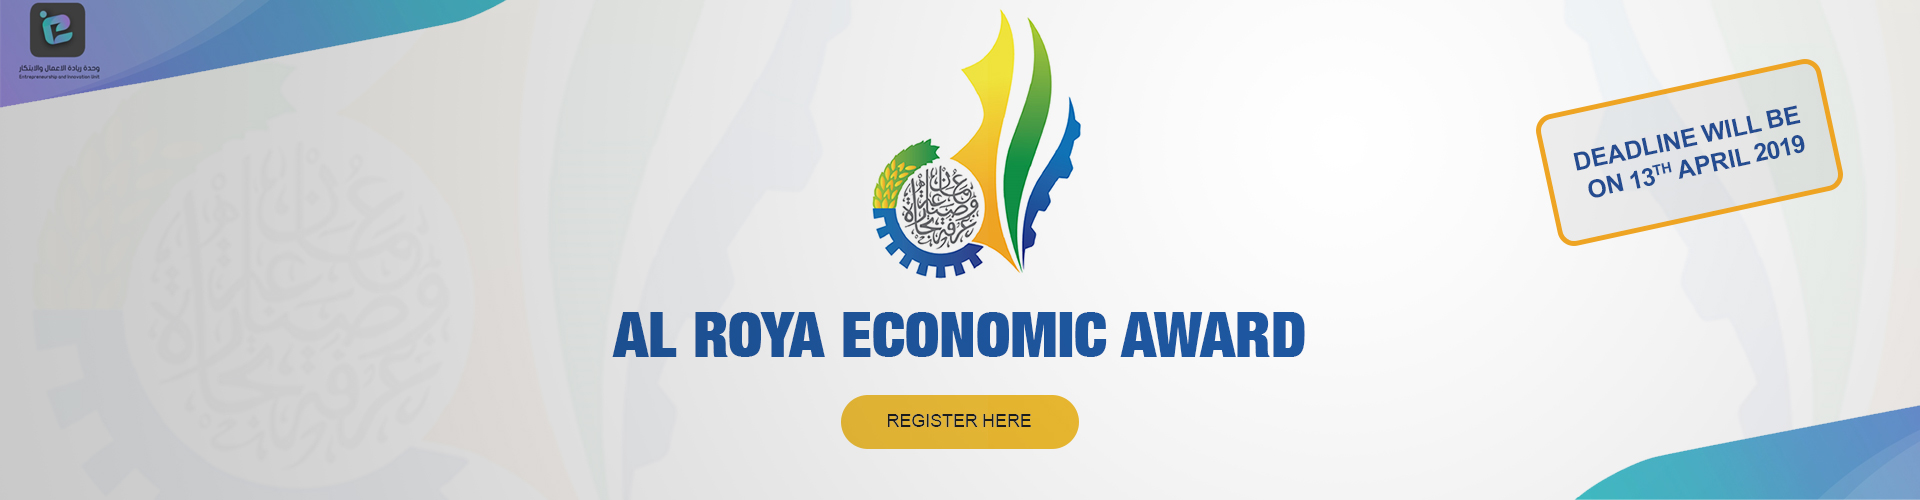 EIU - Al Roya Economic Award